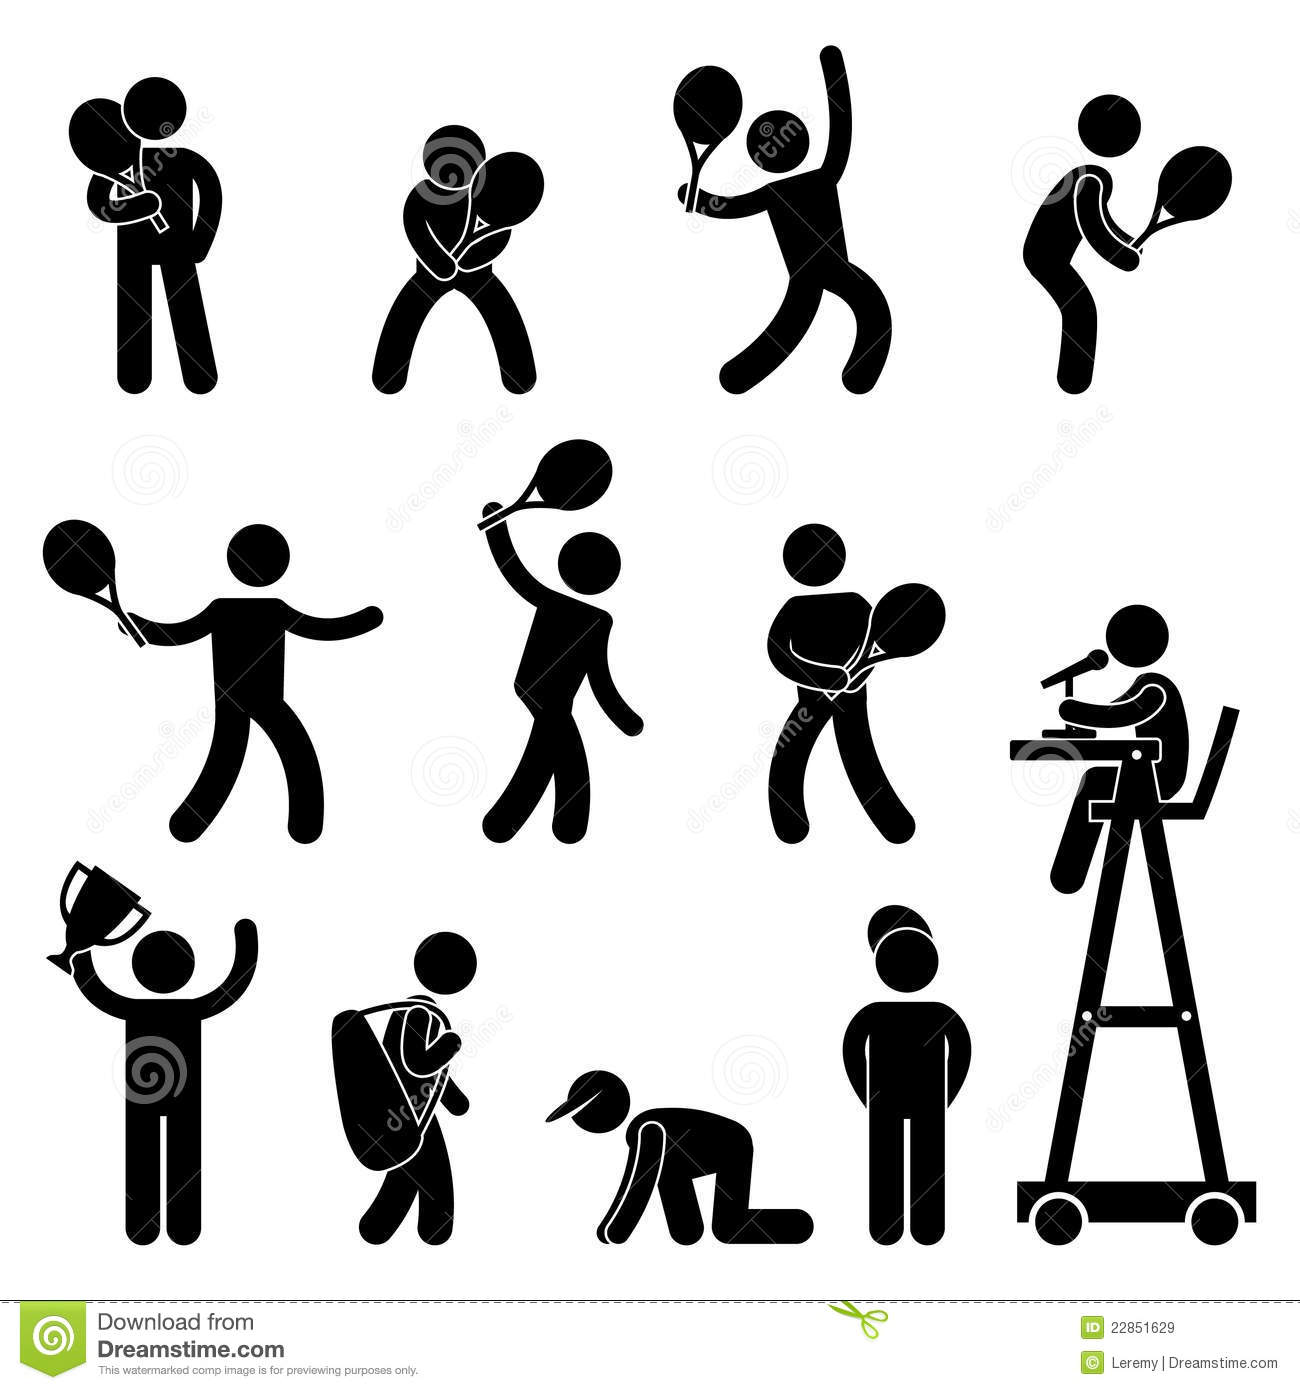 Tennis Player Umpire Pictogram Icon Pictogram Royalty Free